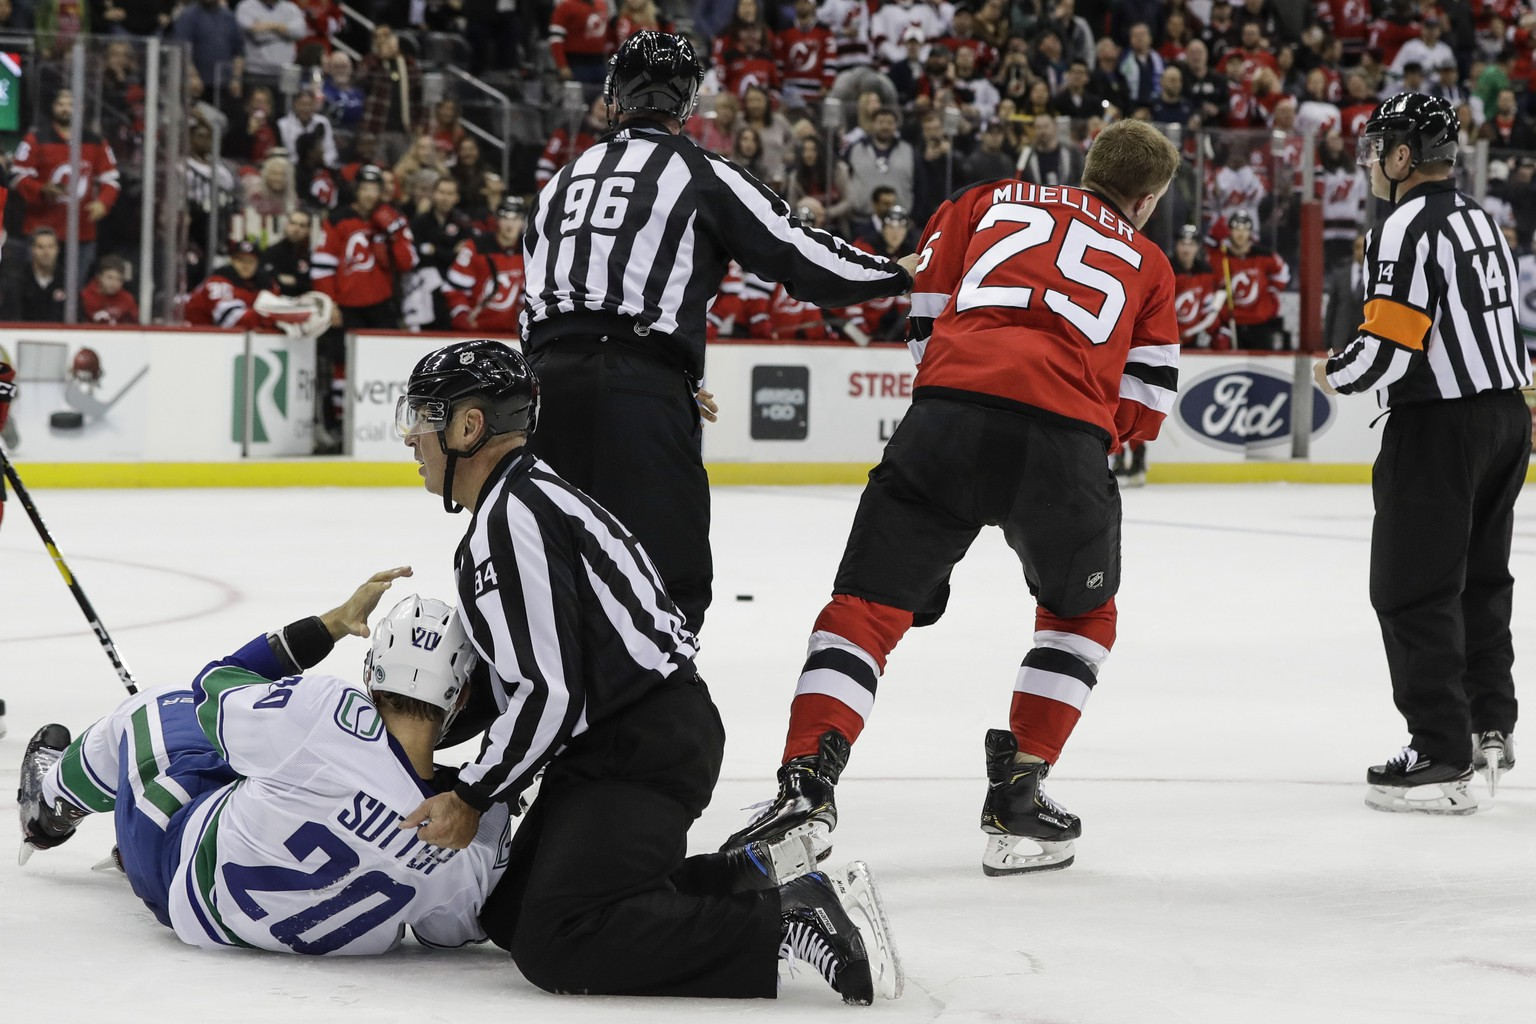 Referee's separate Vancouver Canucks' Brandon Sutter (20) and New Jersey Devils' Mirco Mueller (25) after a fight during the second period of an NHL hockey game Saturday, Oct. 19, 2019, in Newark, N.J. (AP Photo/Frank Franklin II)